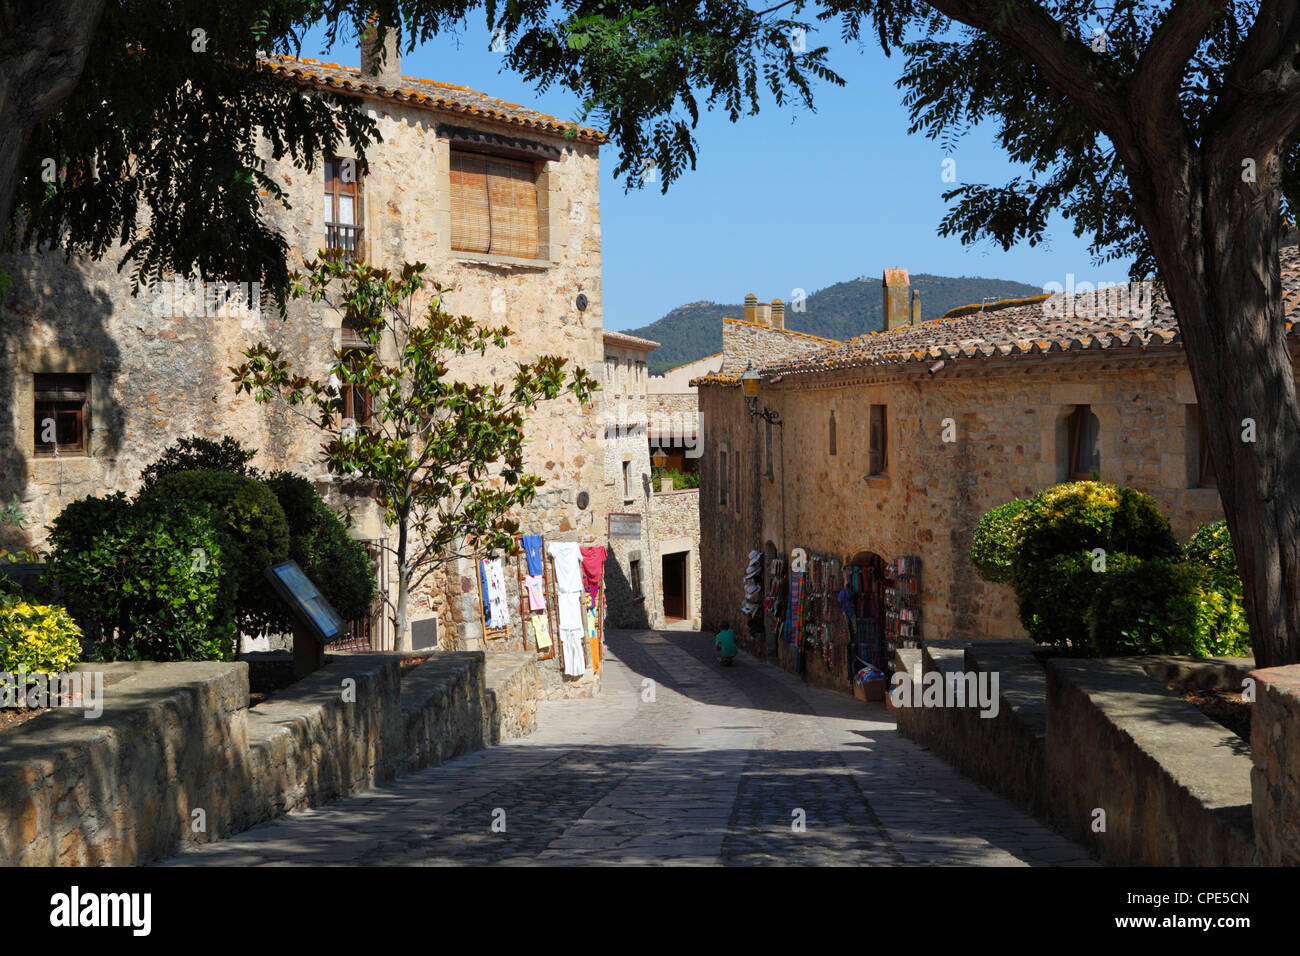 Boutiques in old town, Pals, Costa Brava, Catalonia, Spain, Europe - Stock Image